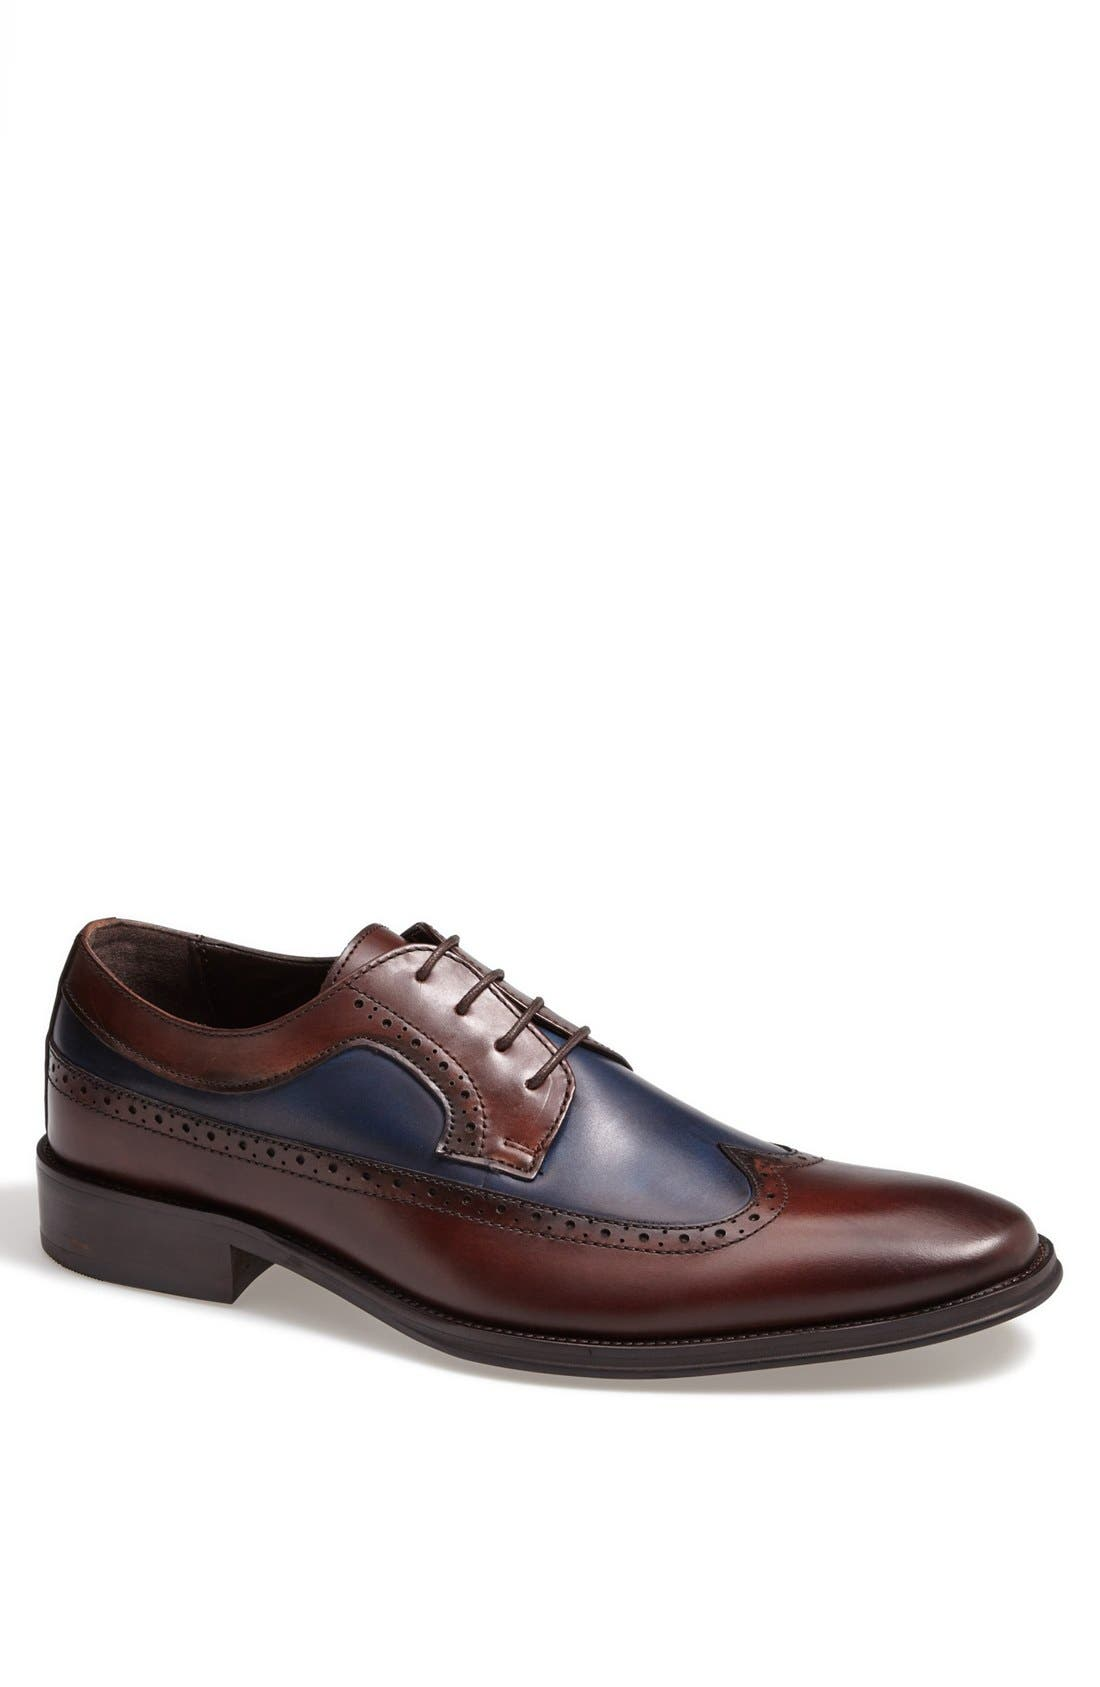 Alternate Image 1 Selected - ALDO 'Frankfort' Longwing Spectator Shoe (Men)